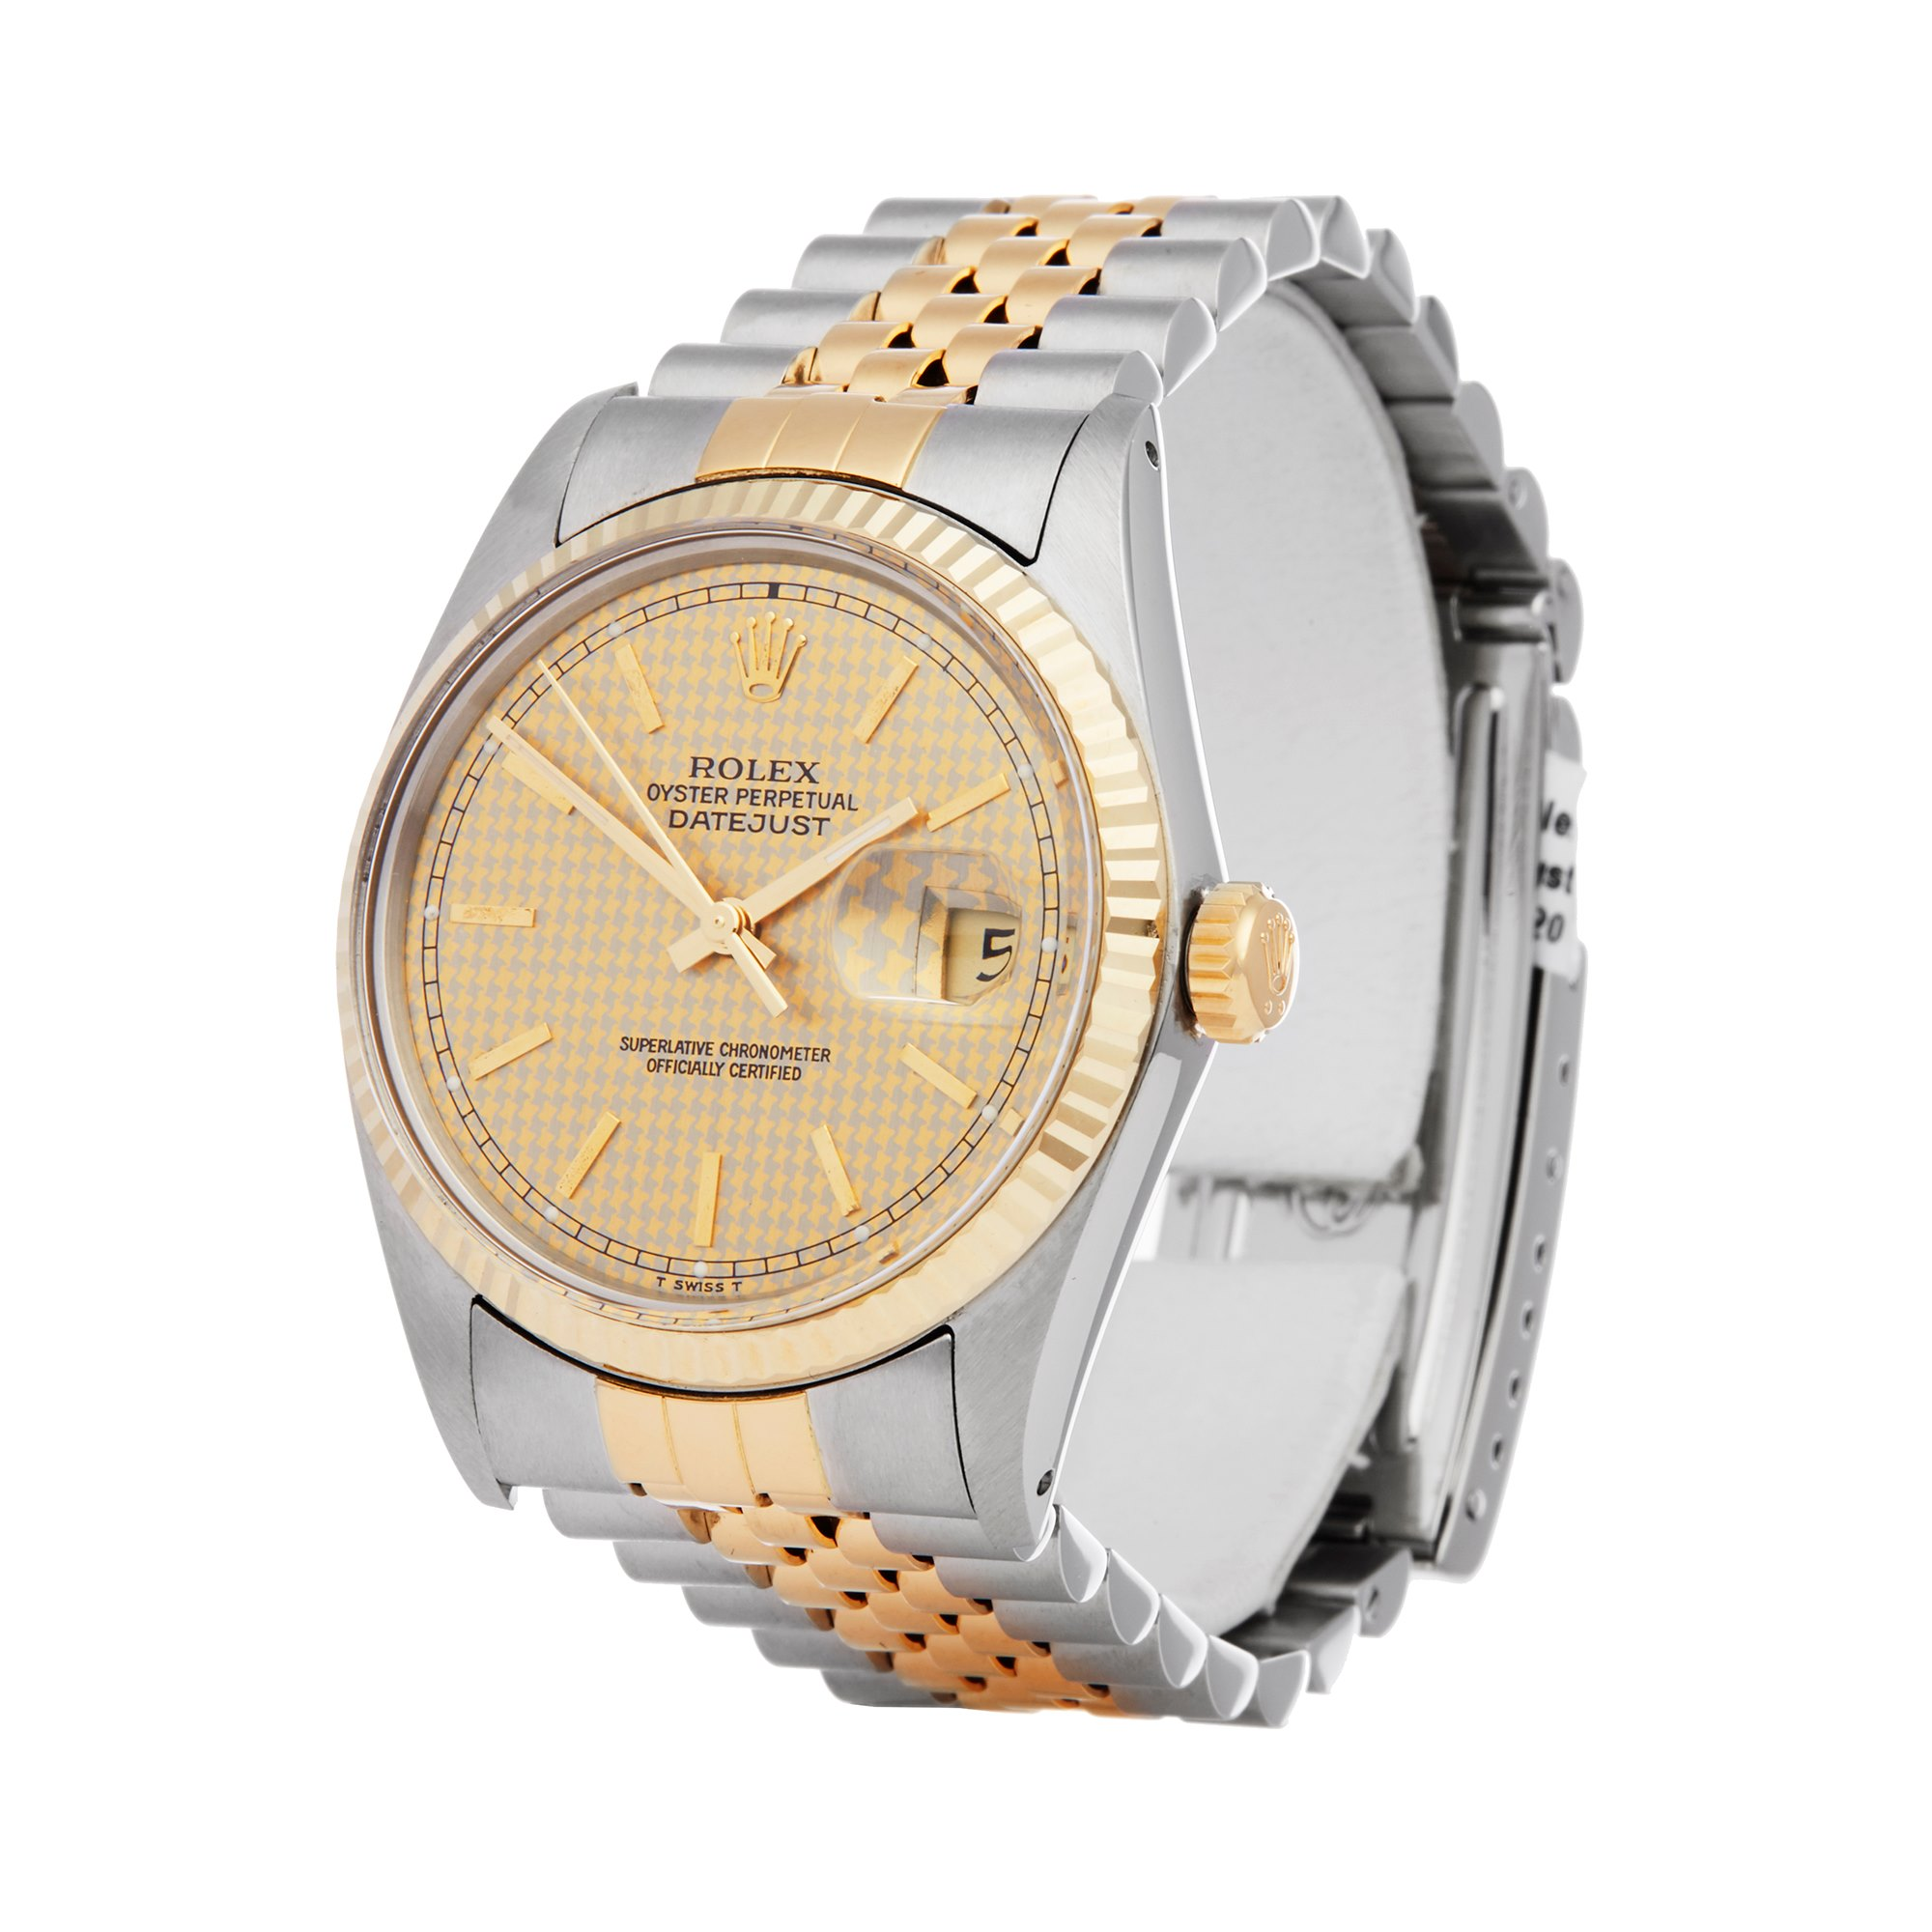 Rolex Datejust 36 Houndstooth Stainless Steel & Yellow Gold 16013